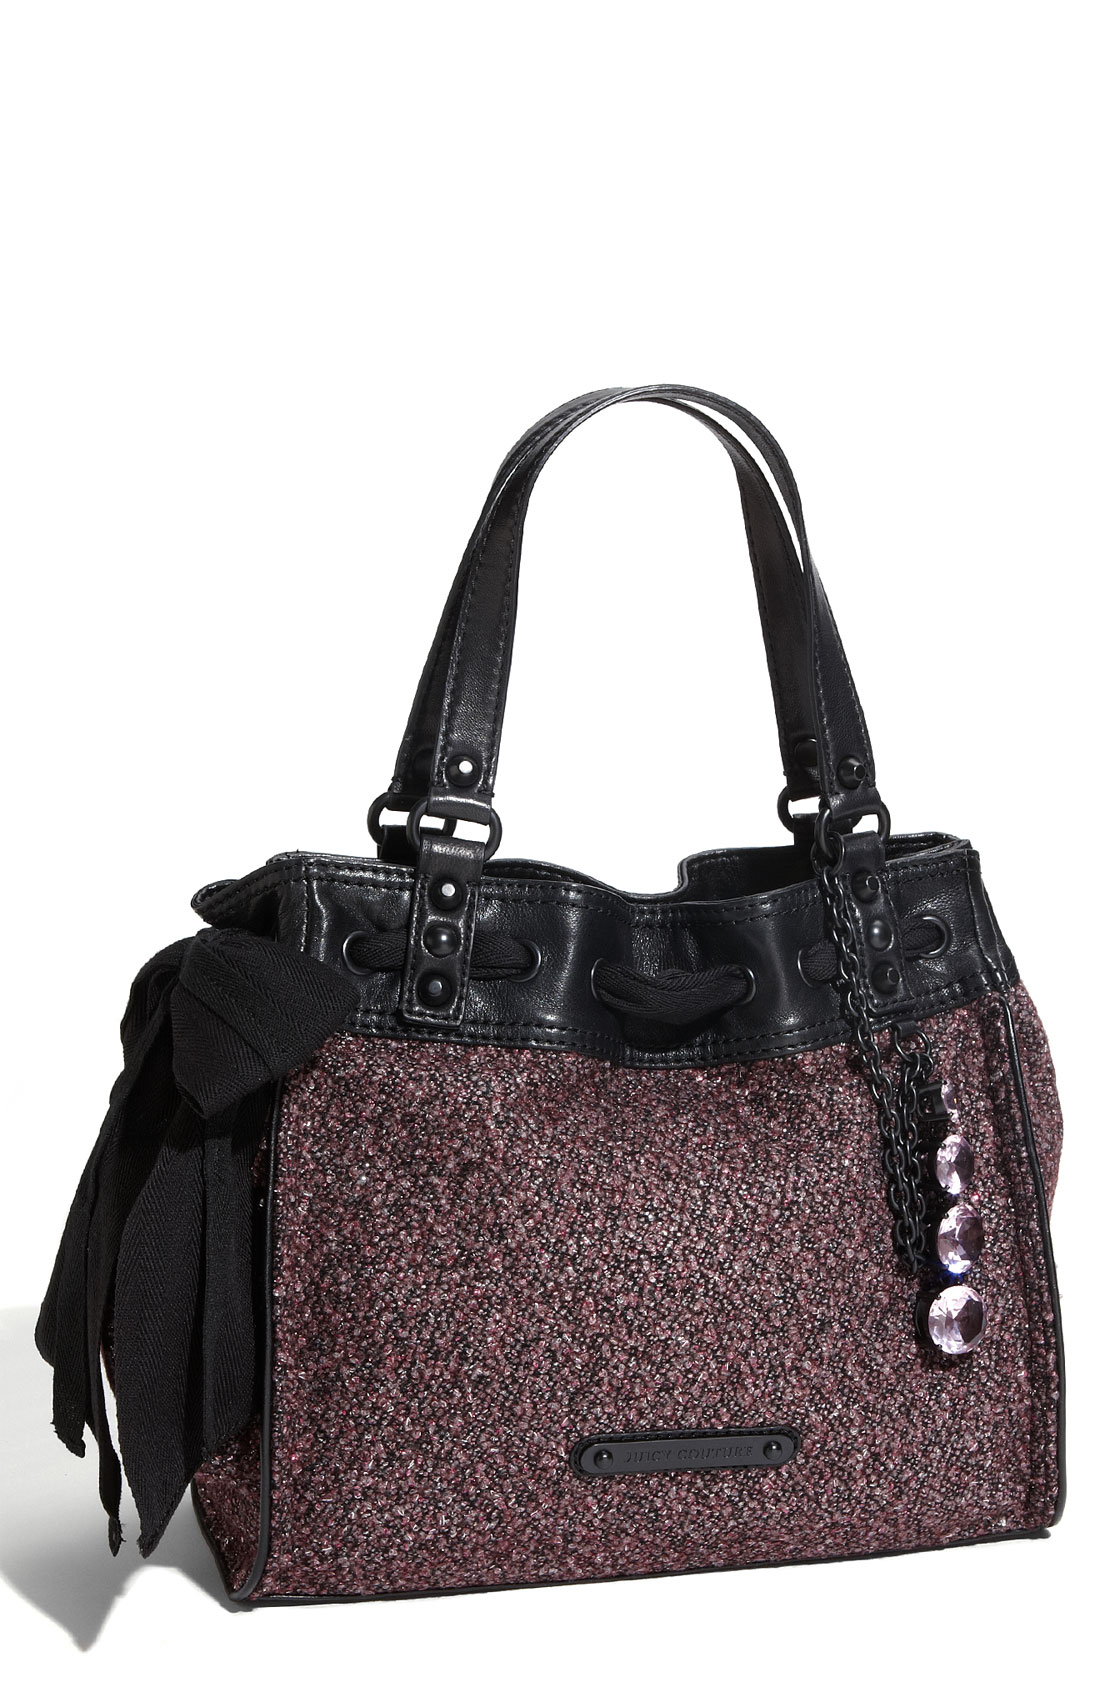 juicy couture after dark daydreamer tote in purple rich aubergine lyst. Black Bedroom Furniture Sets. Home Design Ideas